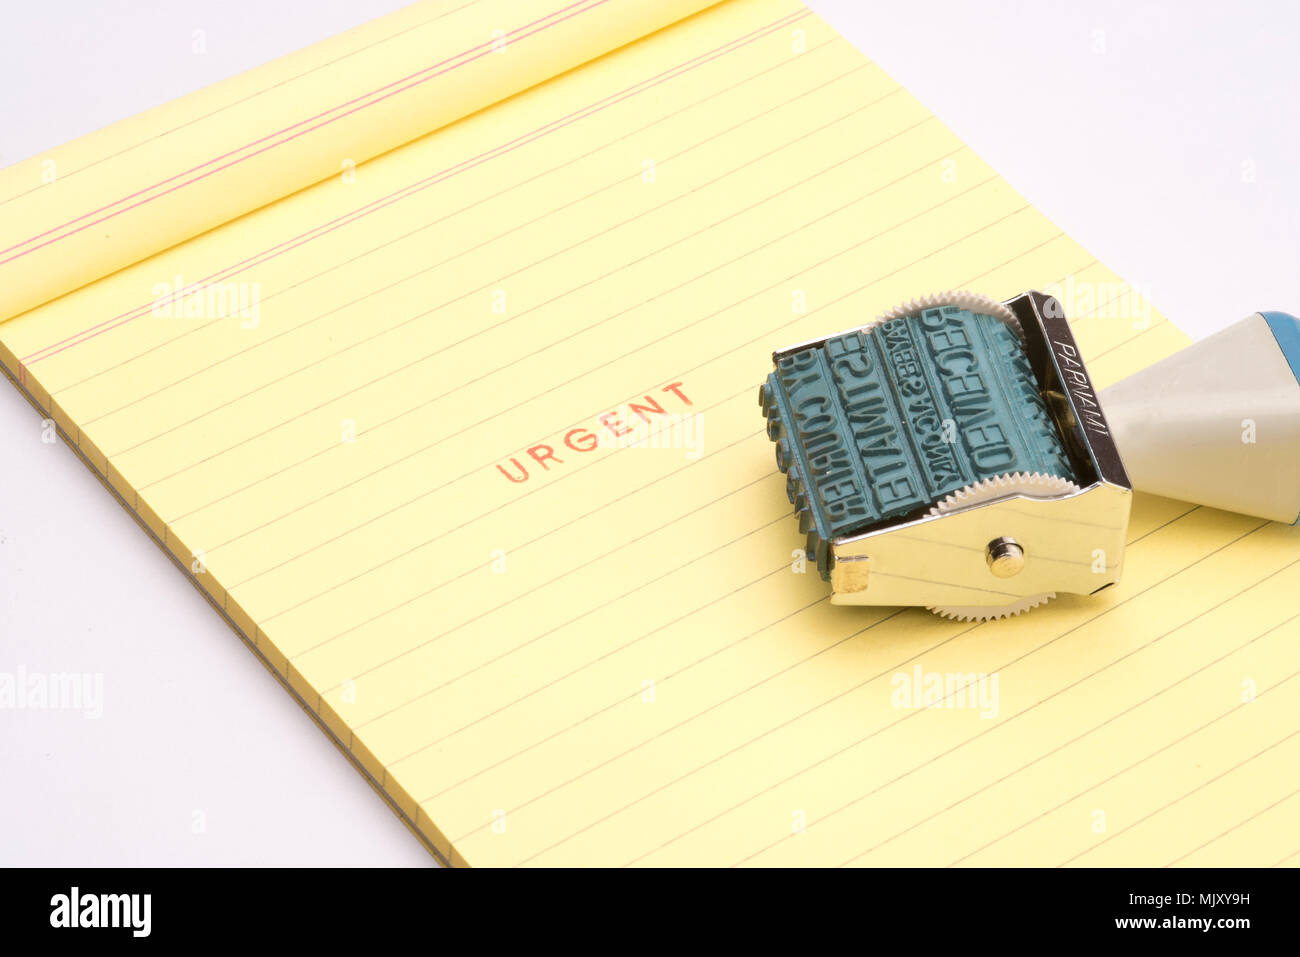 'Urgent' rubber stamp with yellow note pad - Stock Image